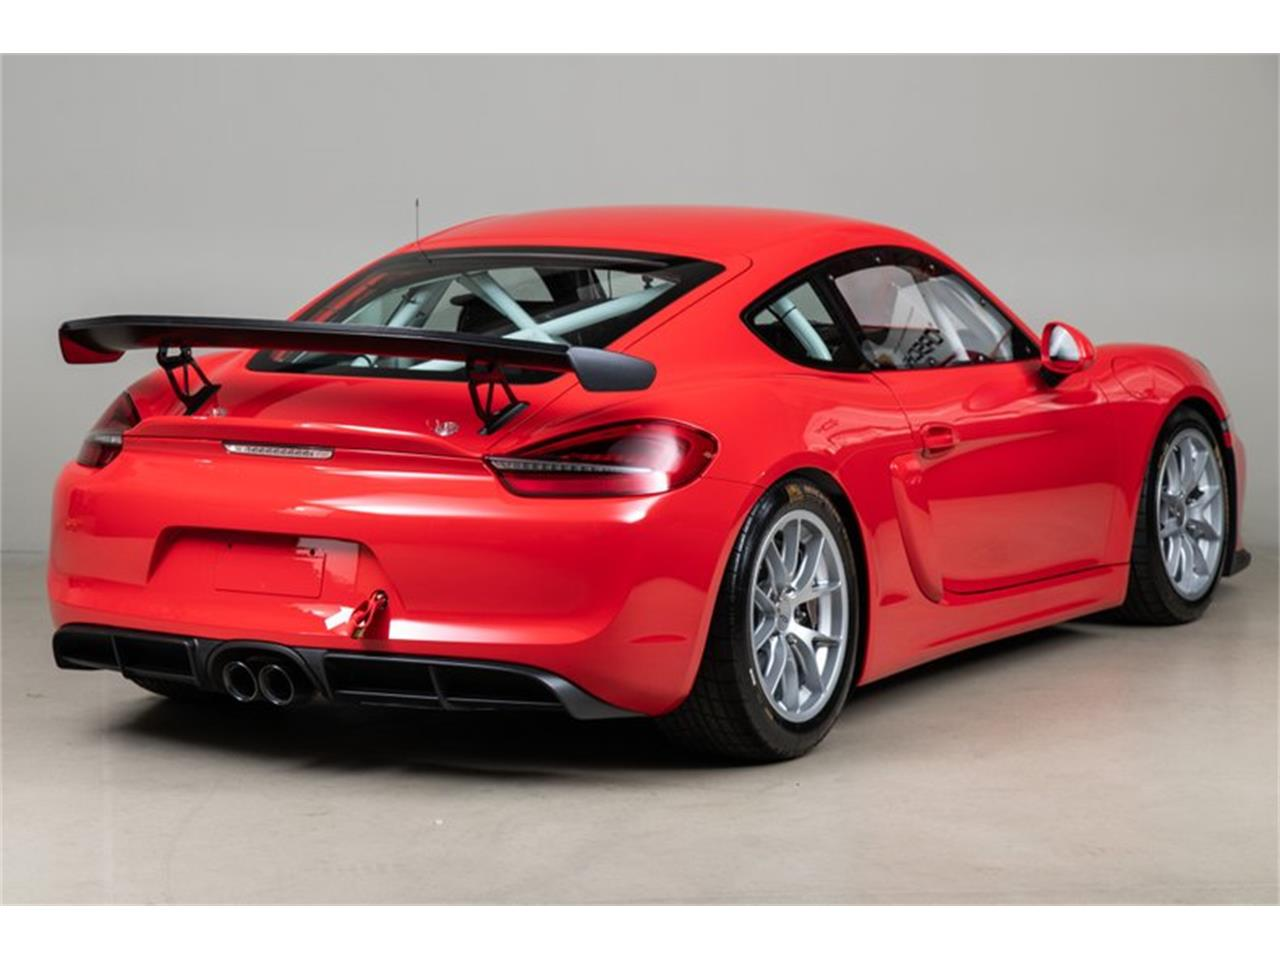 Large Picture of '16 Porsche Cayman located in California Auction Vehicle Offered by Canepa - PX7K